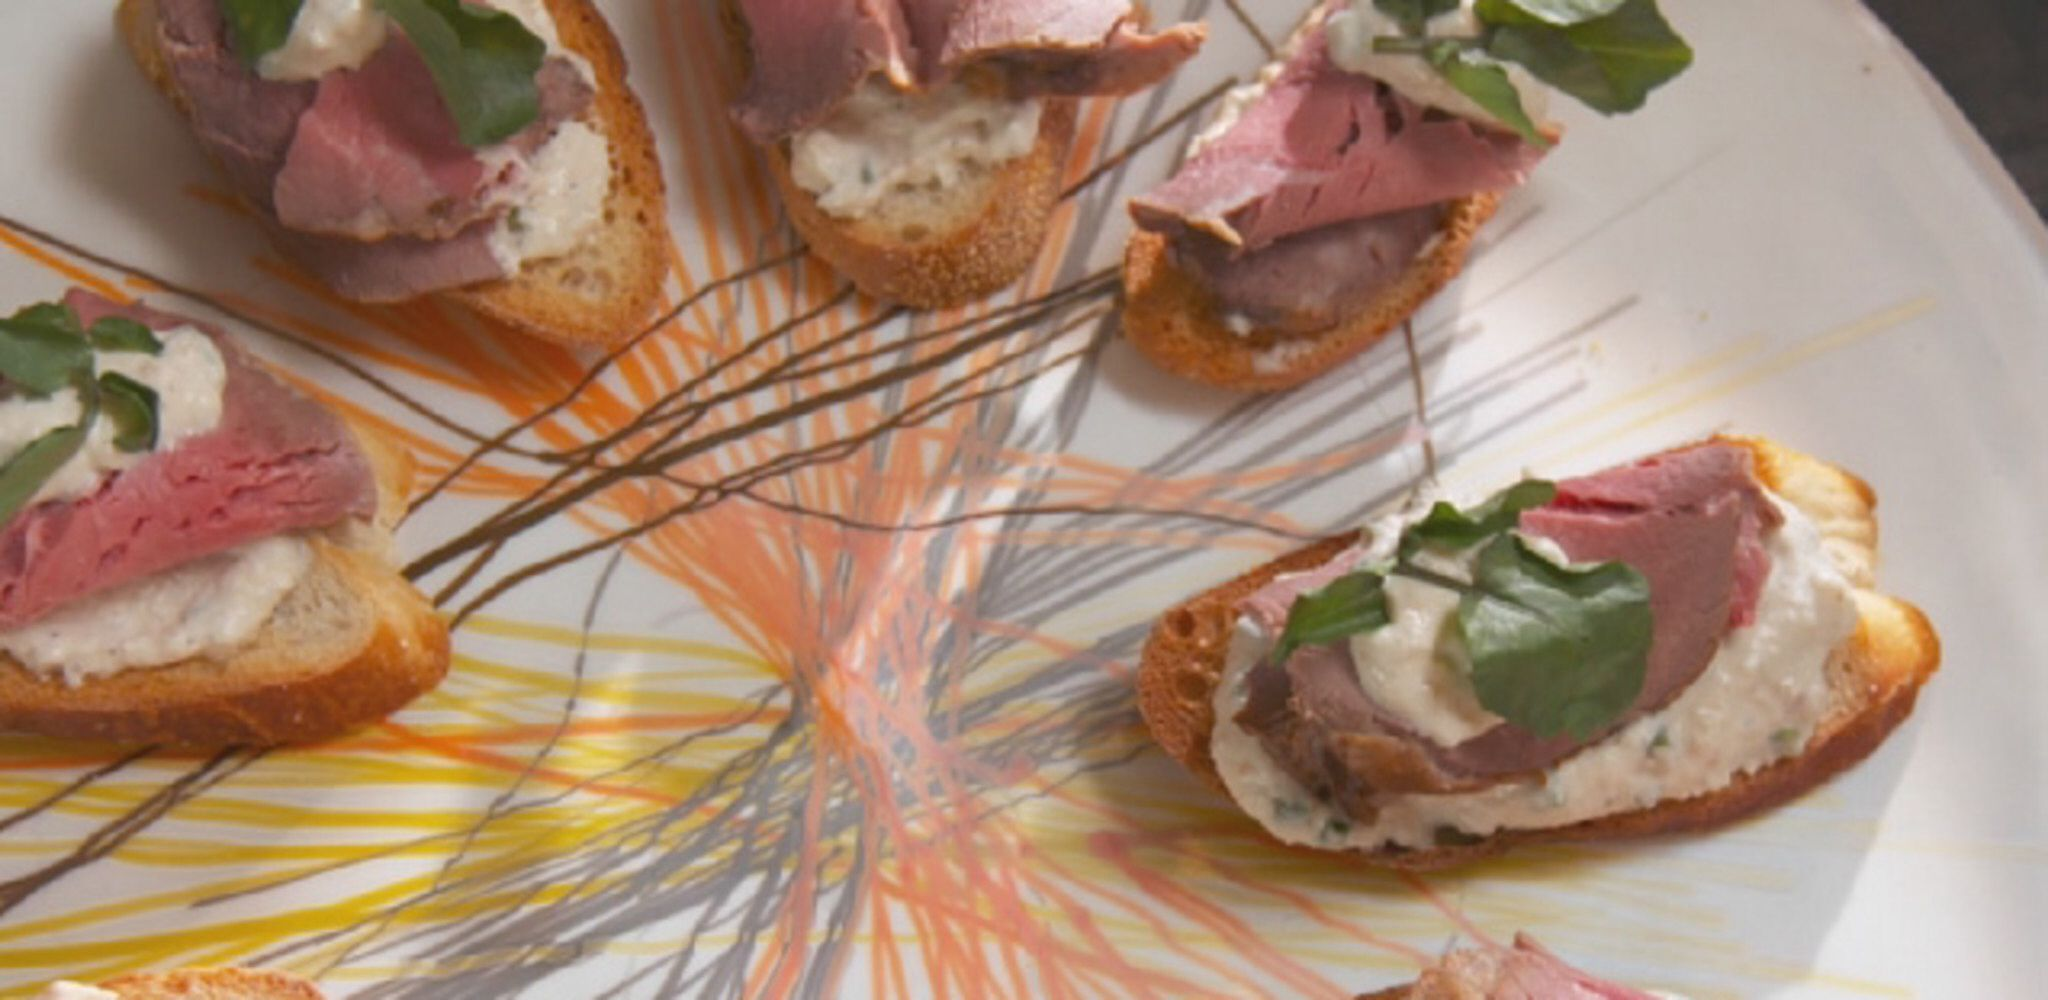 Beef Tenderloin Crostini Recipe I M A Foodie Nibbles Beef Tenderloin Farmhouse Rules Nancy Fuller